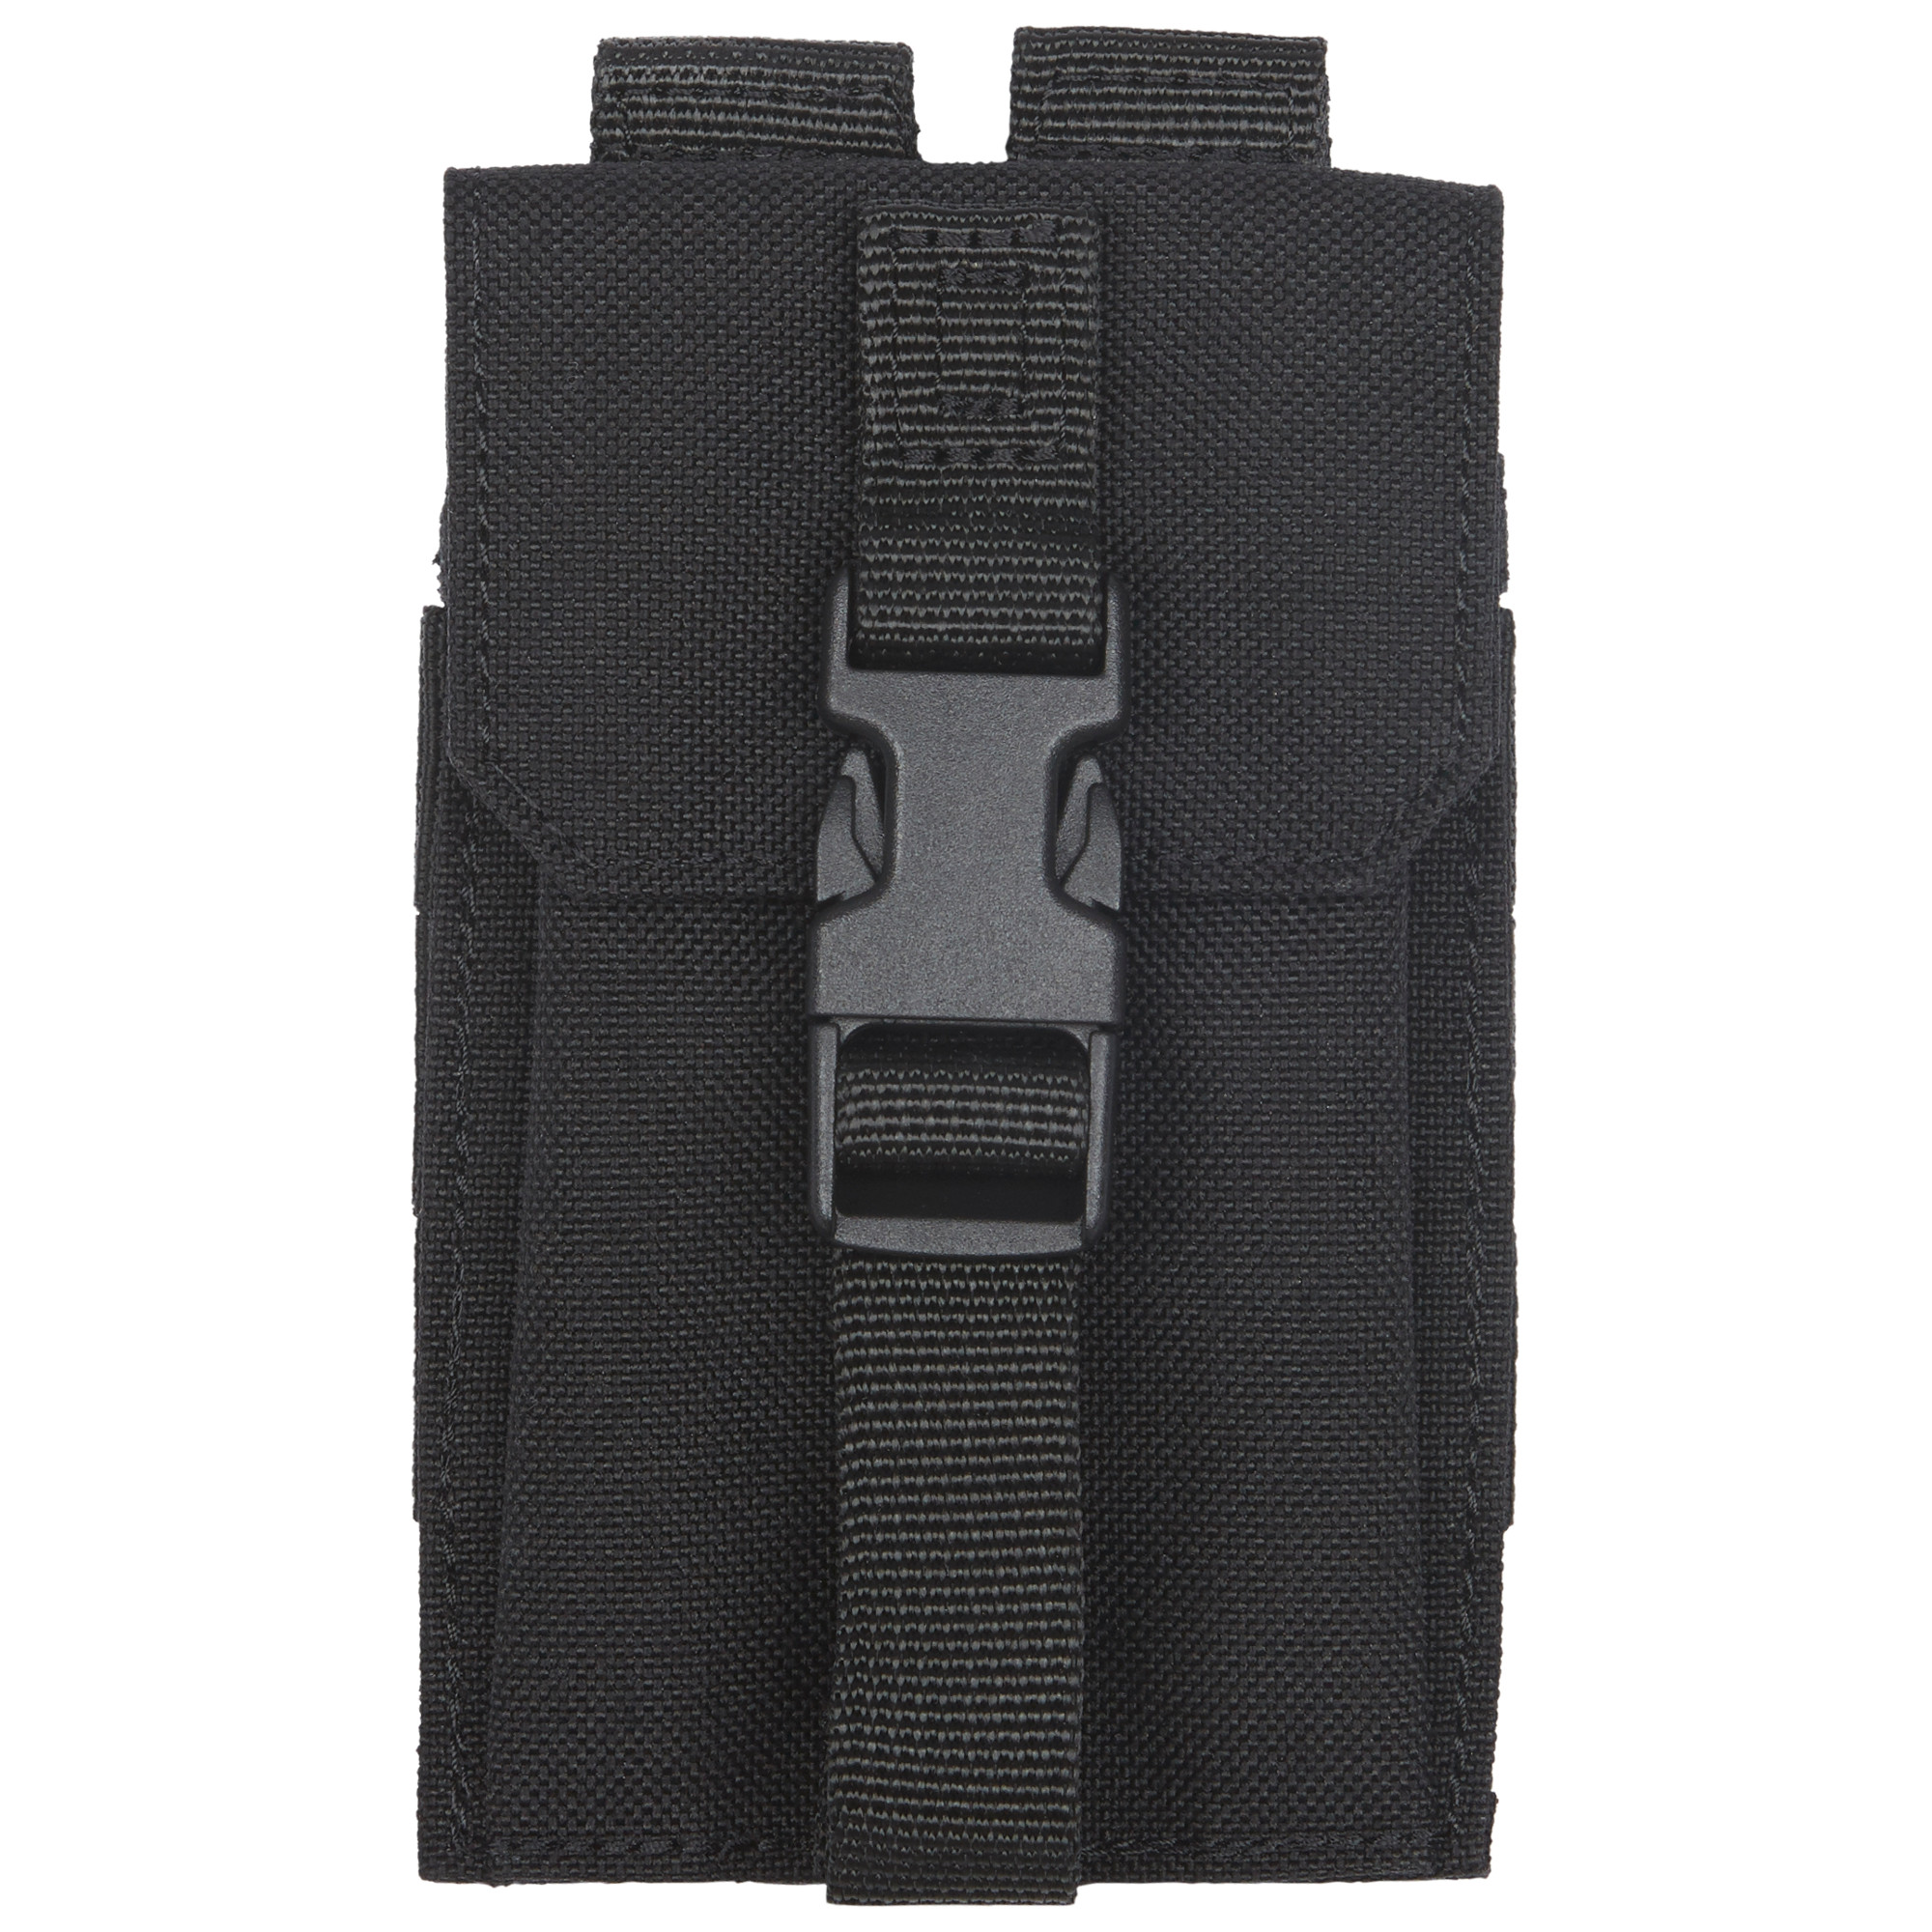 e831b31b561 Buy 5.11 Tactical Strobe Gps Pouch - 5.11 Tactical Online at Best ...